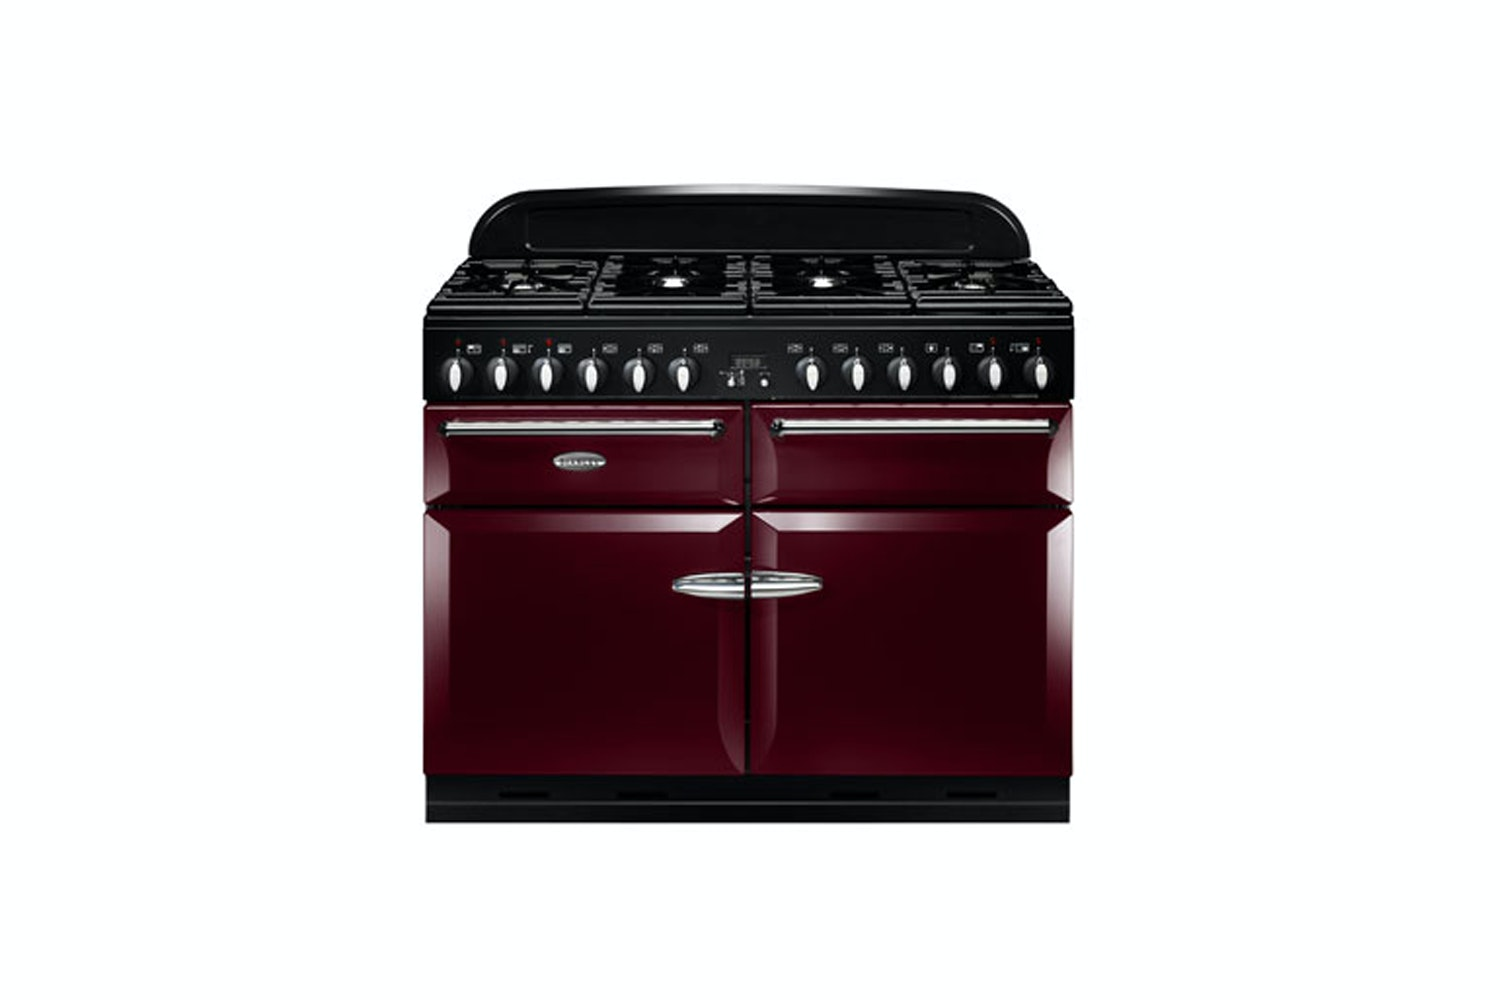 Stanley Supreme Deluxe 110cm Dual Fuel Range Cooker | SSUP110DFFCY/C | Cranberry